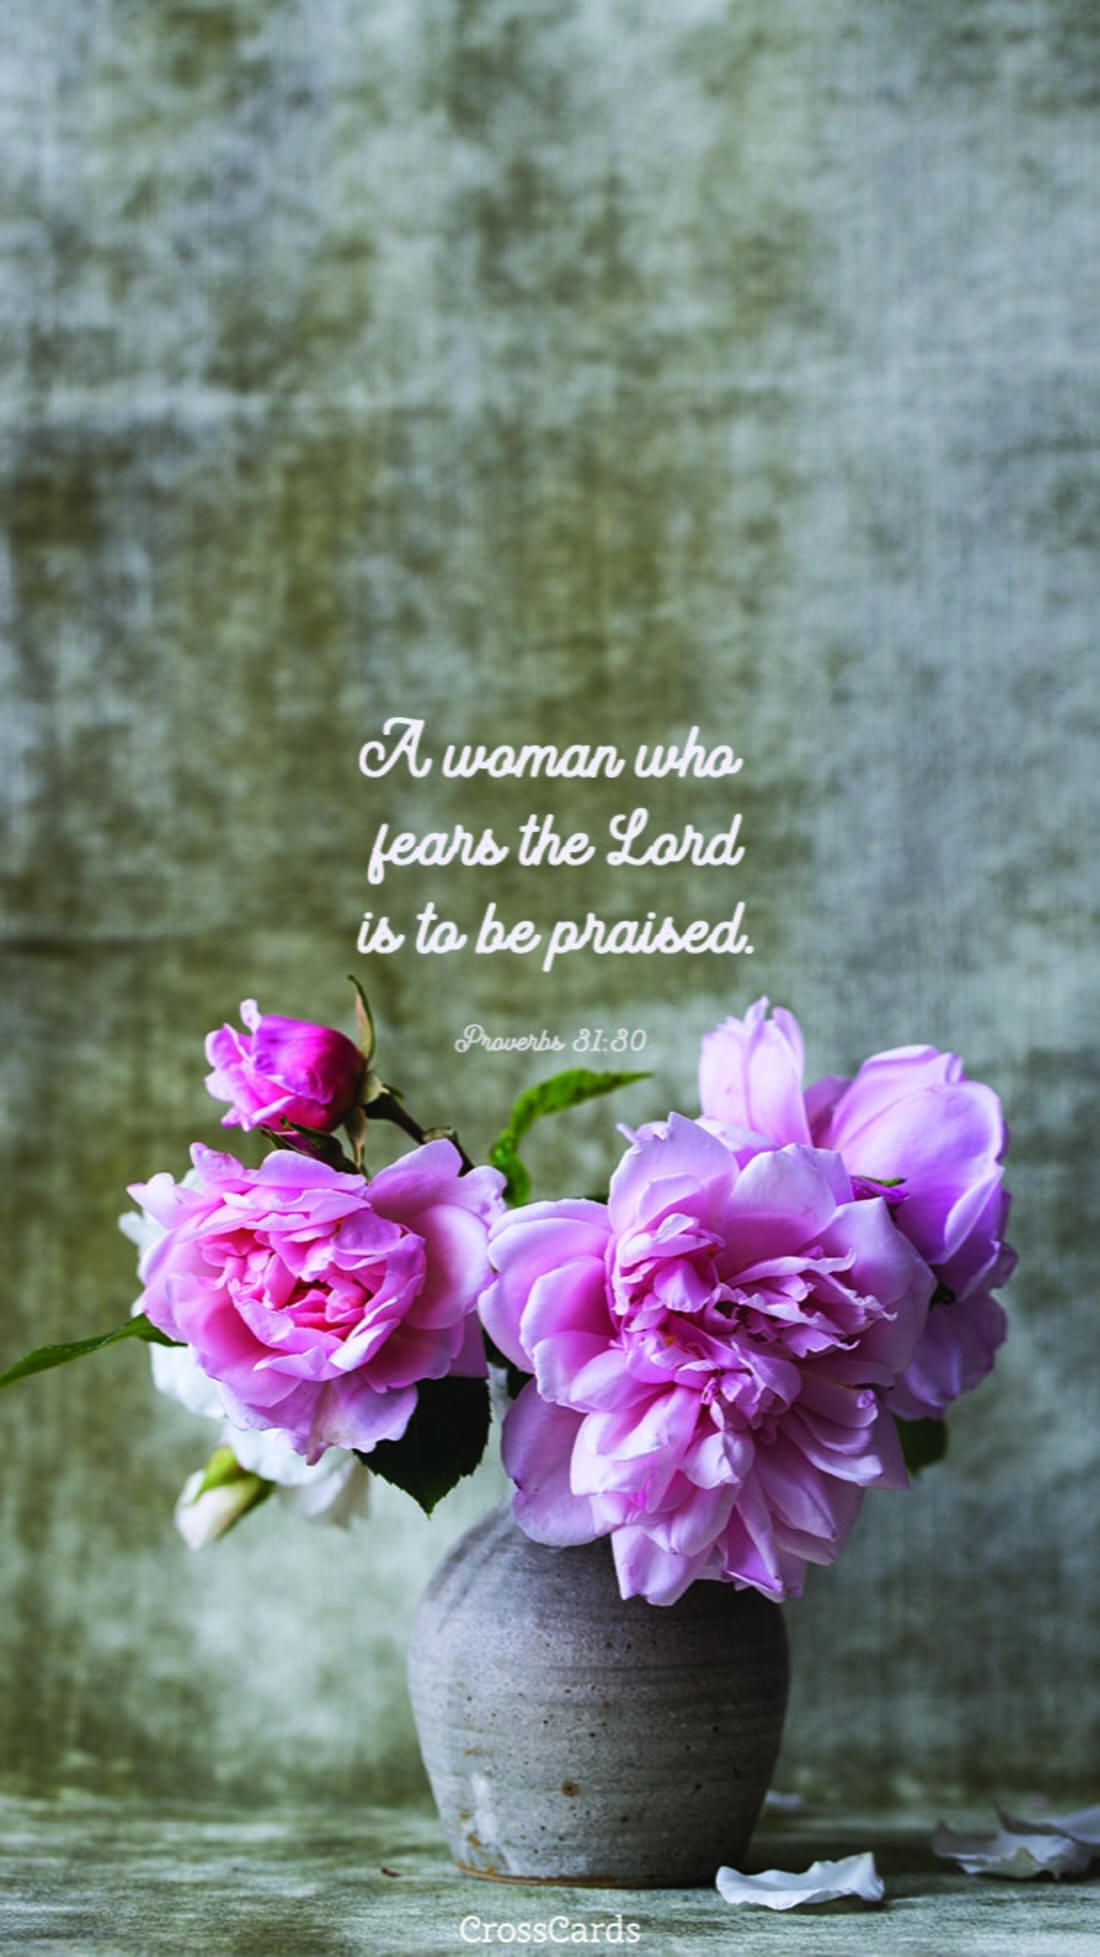 Proverbs 31:30 mobile phone wallpaper